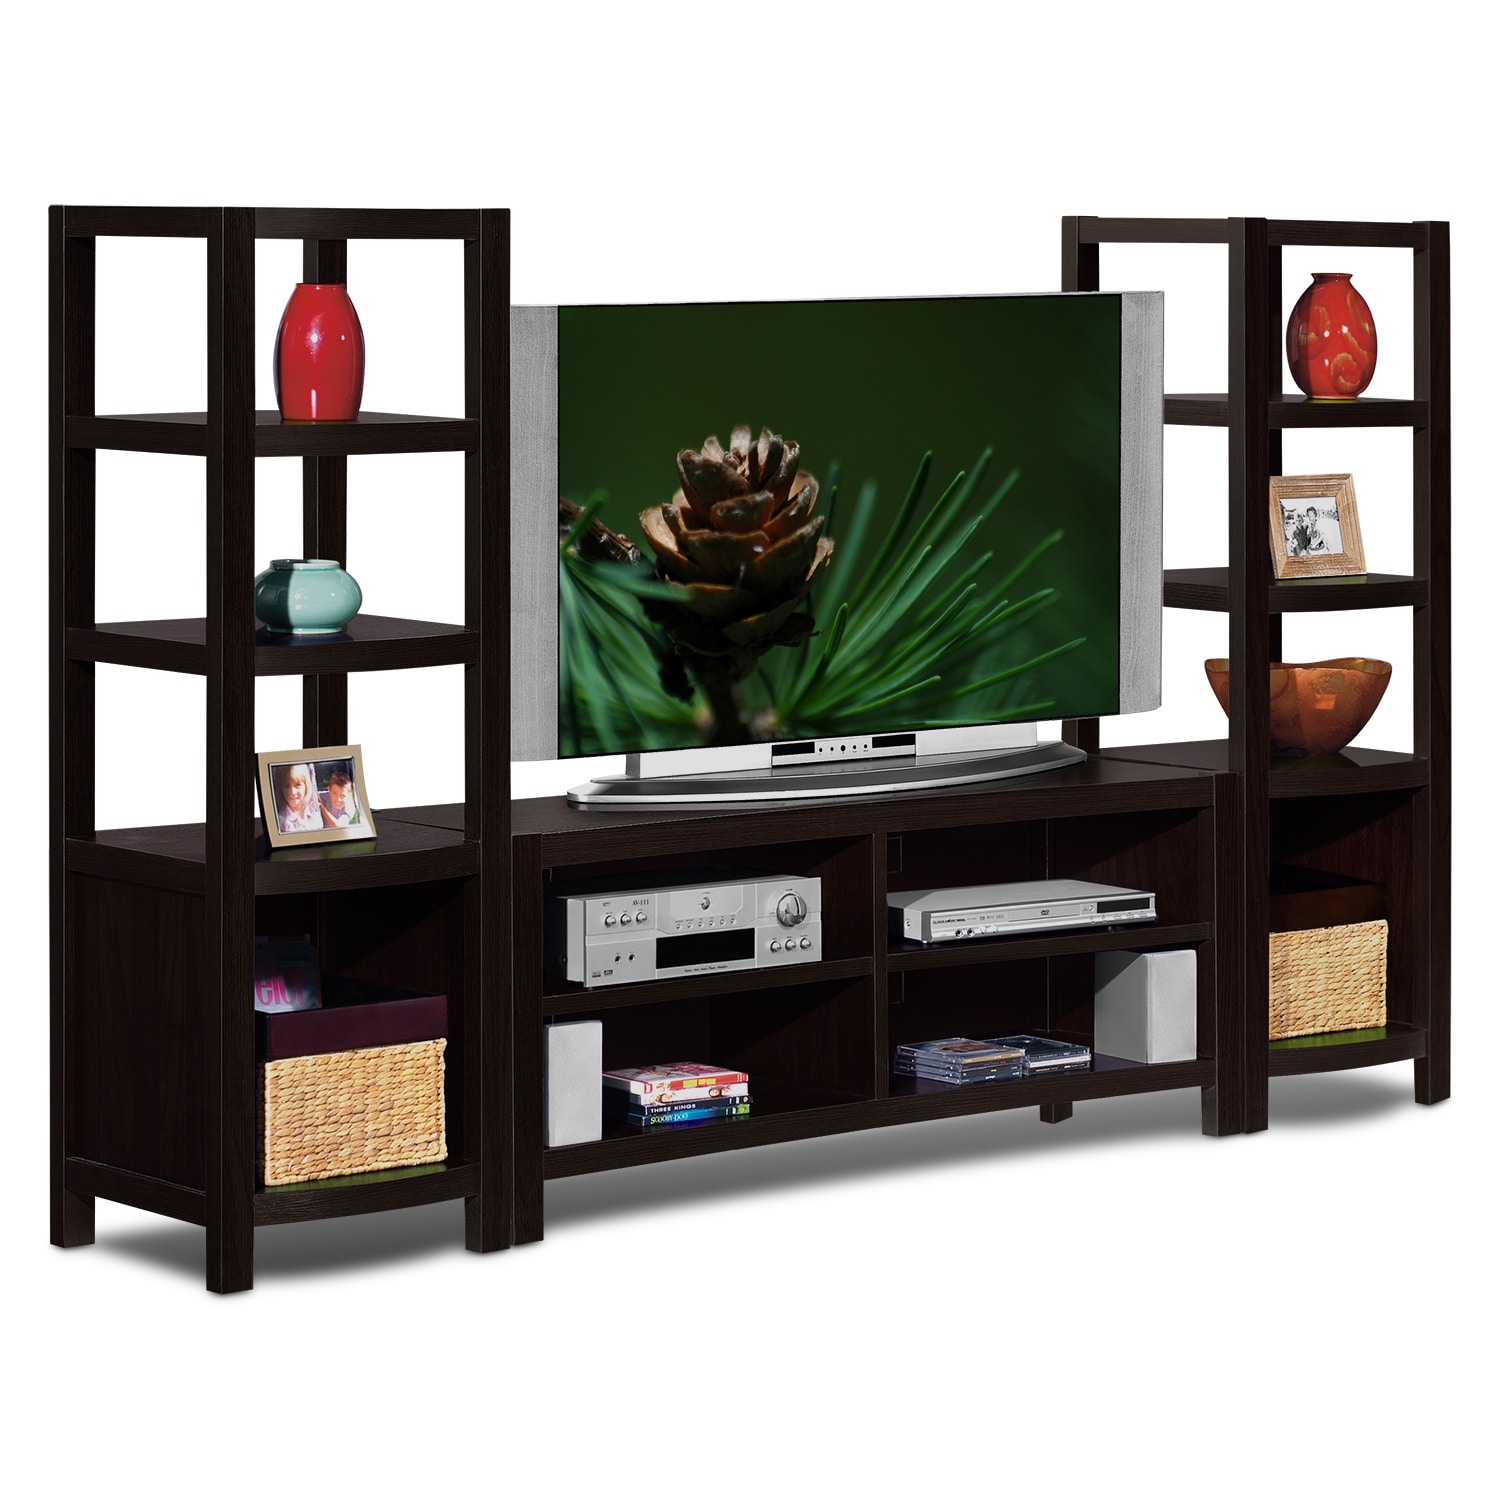 tv stands media centers storage cabinets value city. Black Bedroom Furniture Sets. Home Design Ideas